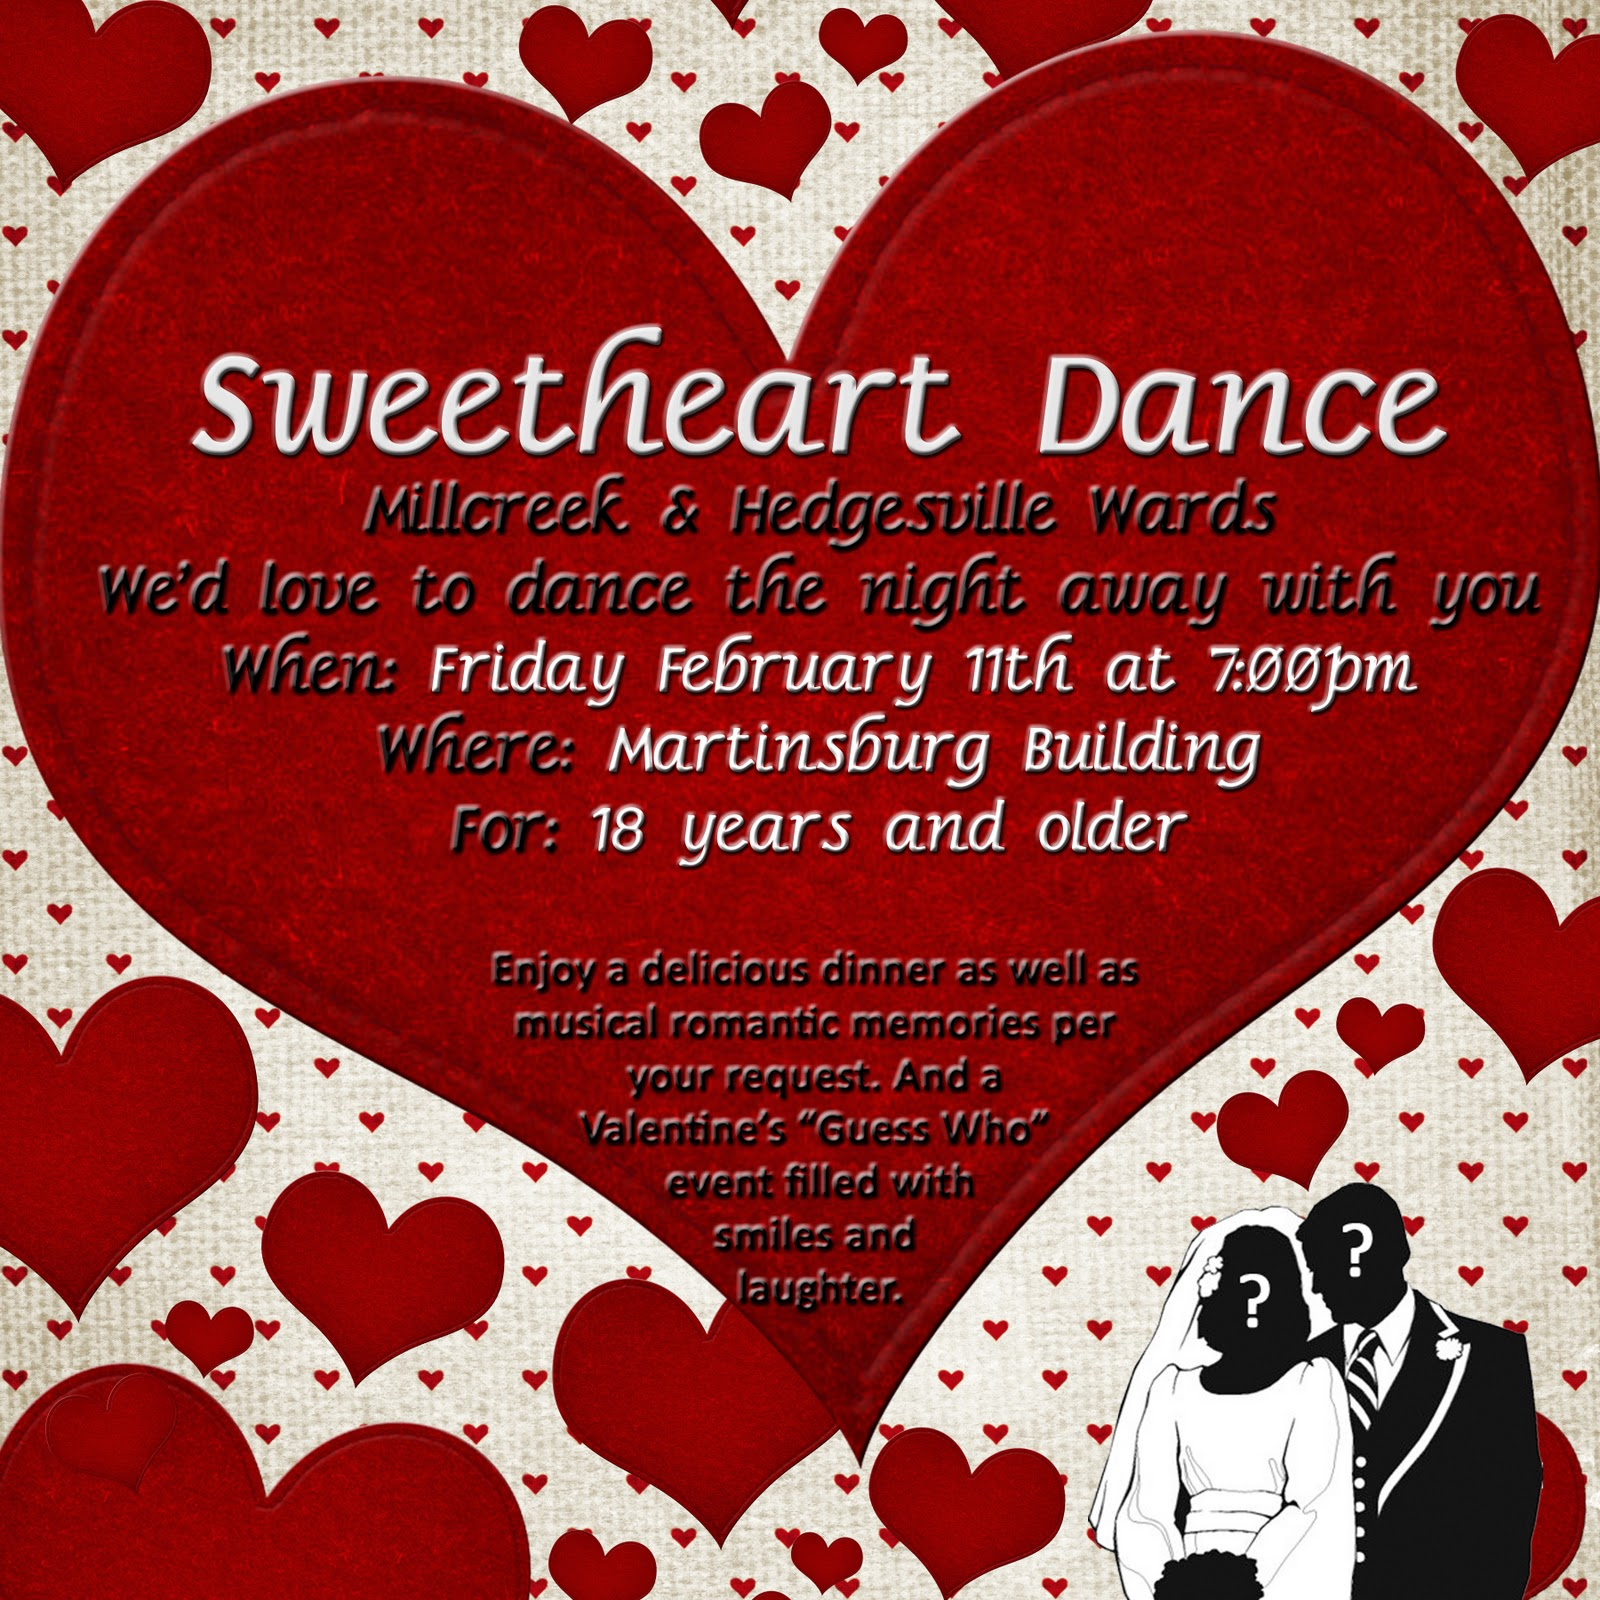 Hedgesville ward relief society sweetheart dance